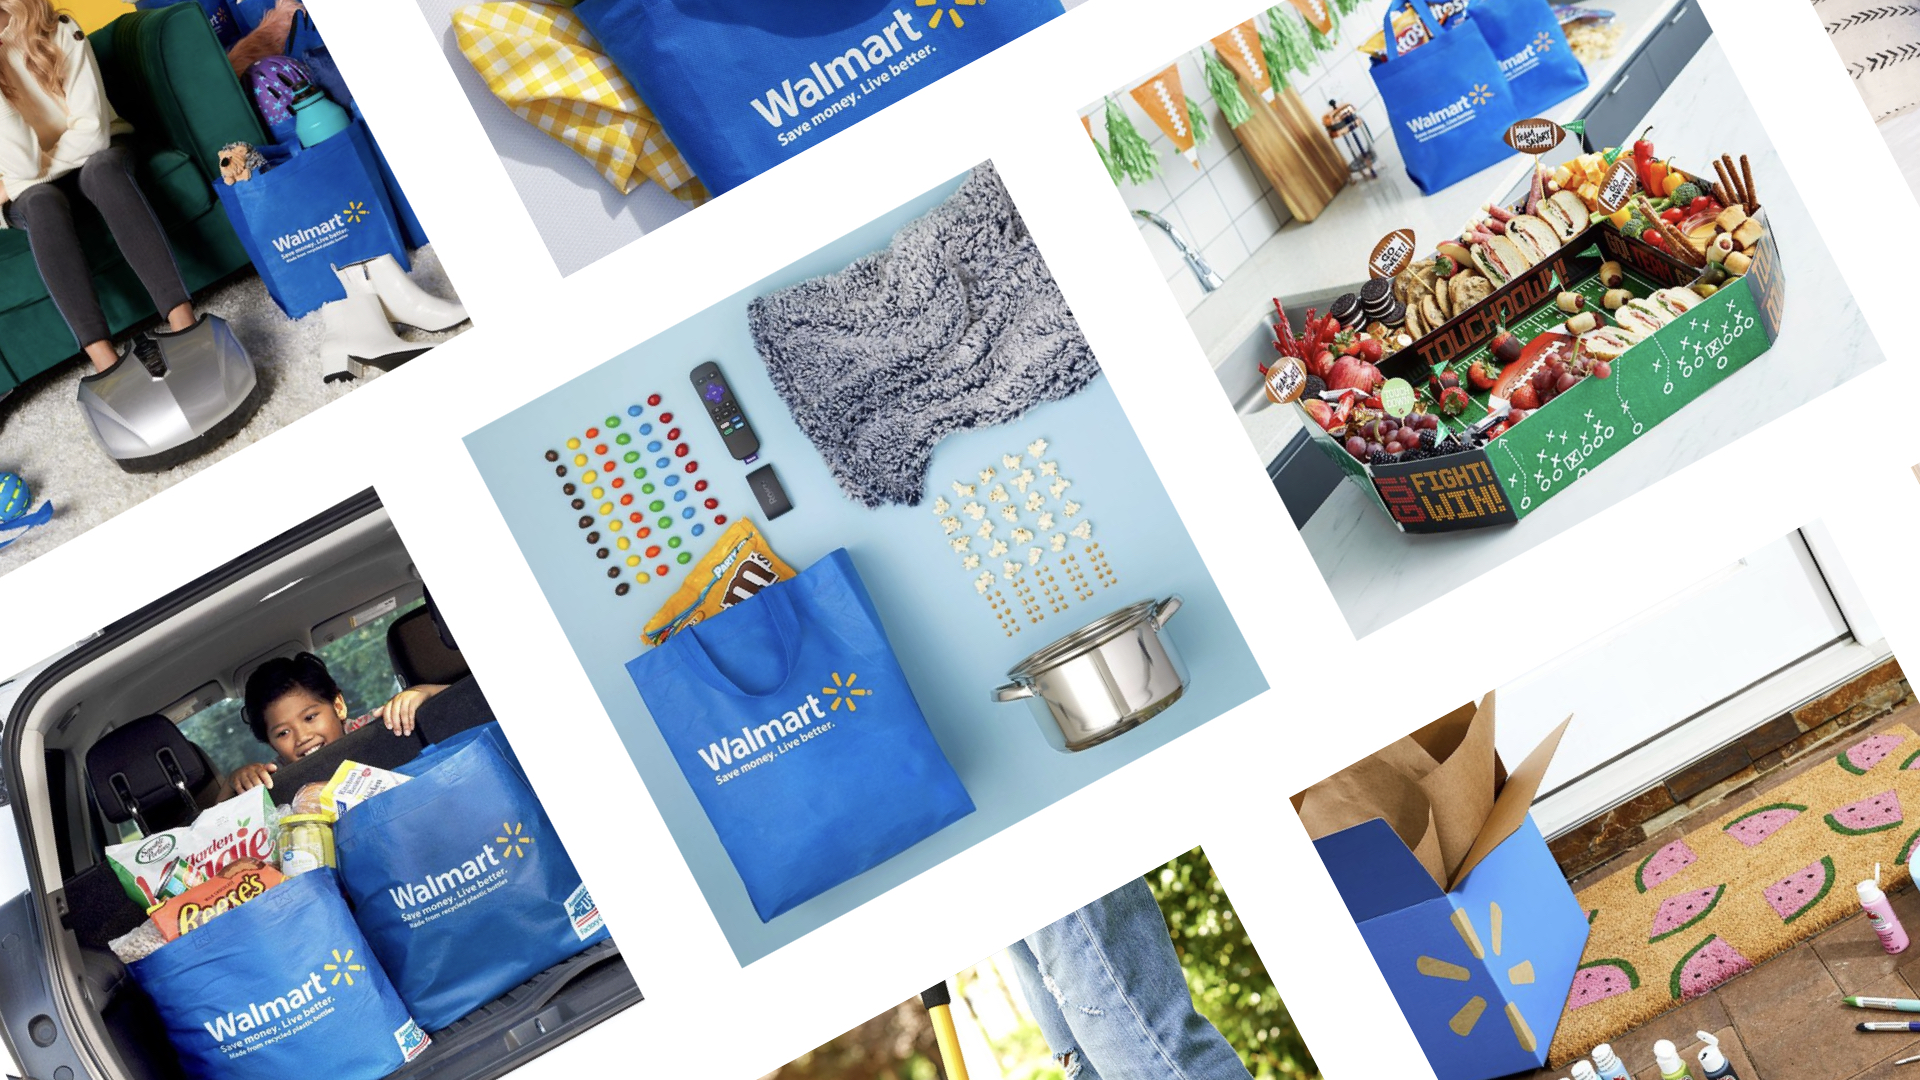 G & Co. is a digital user experience (UX) and user interface (UI) web design agency who has worked with Walmart and created the eCommerce design work for Walmart +